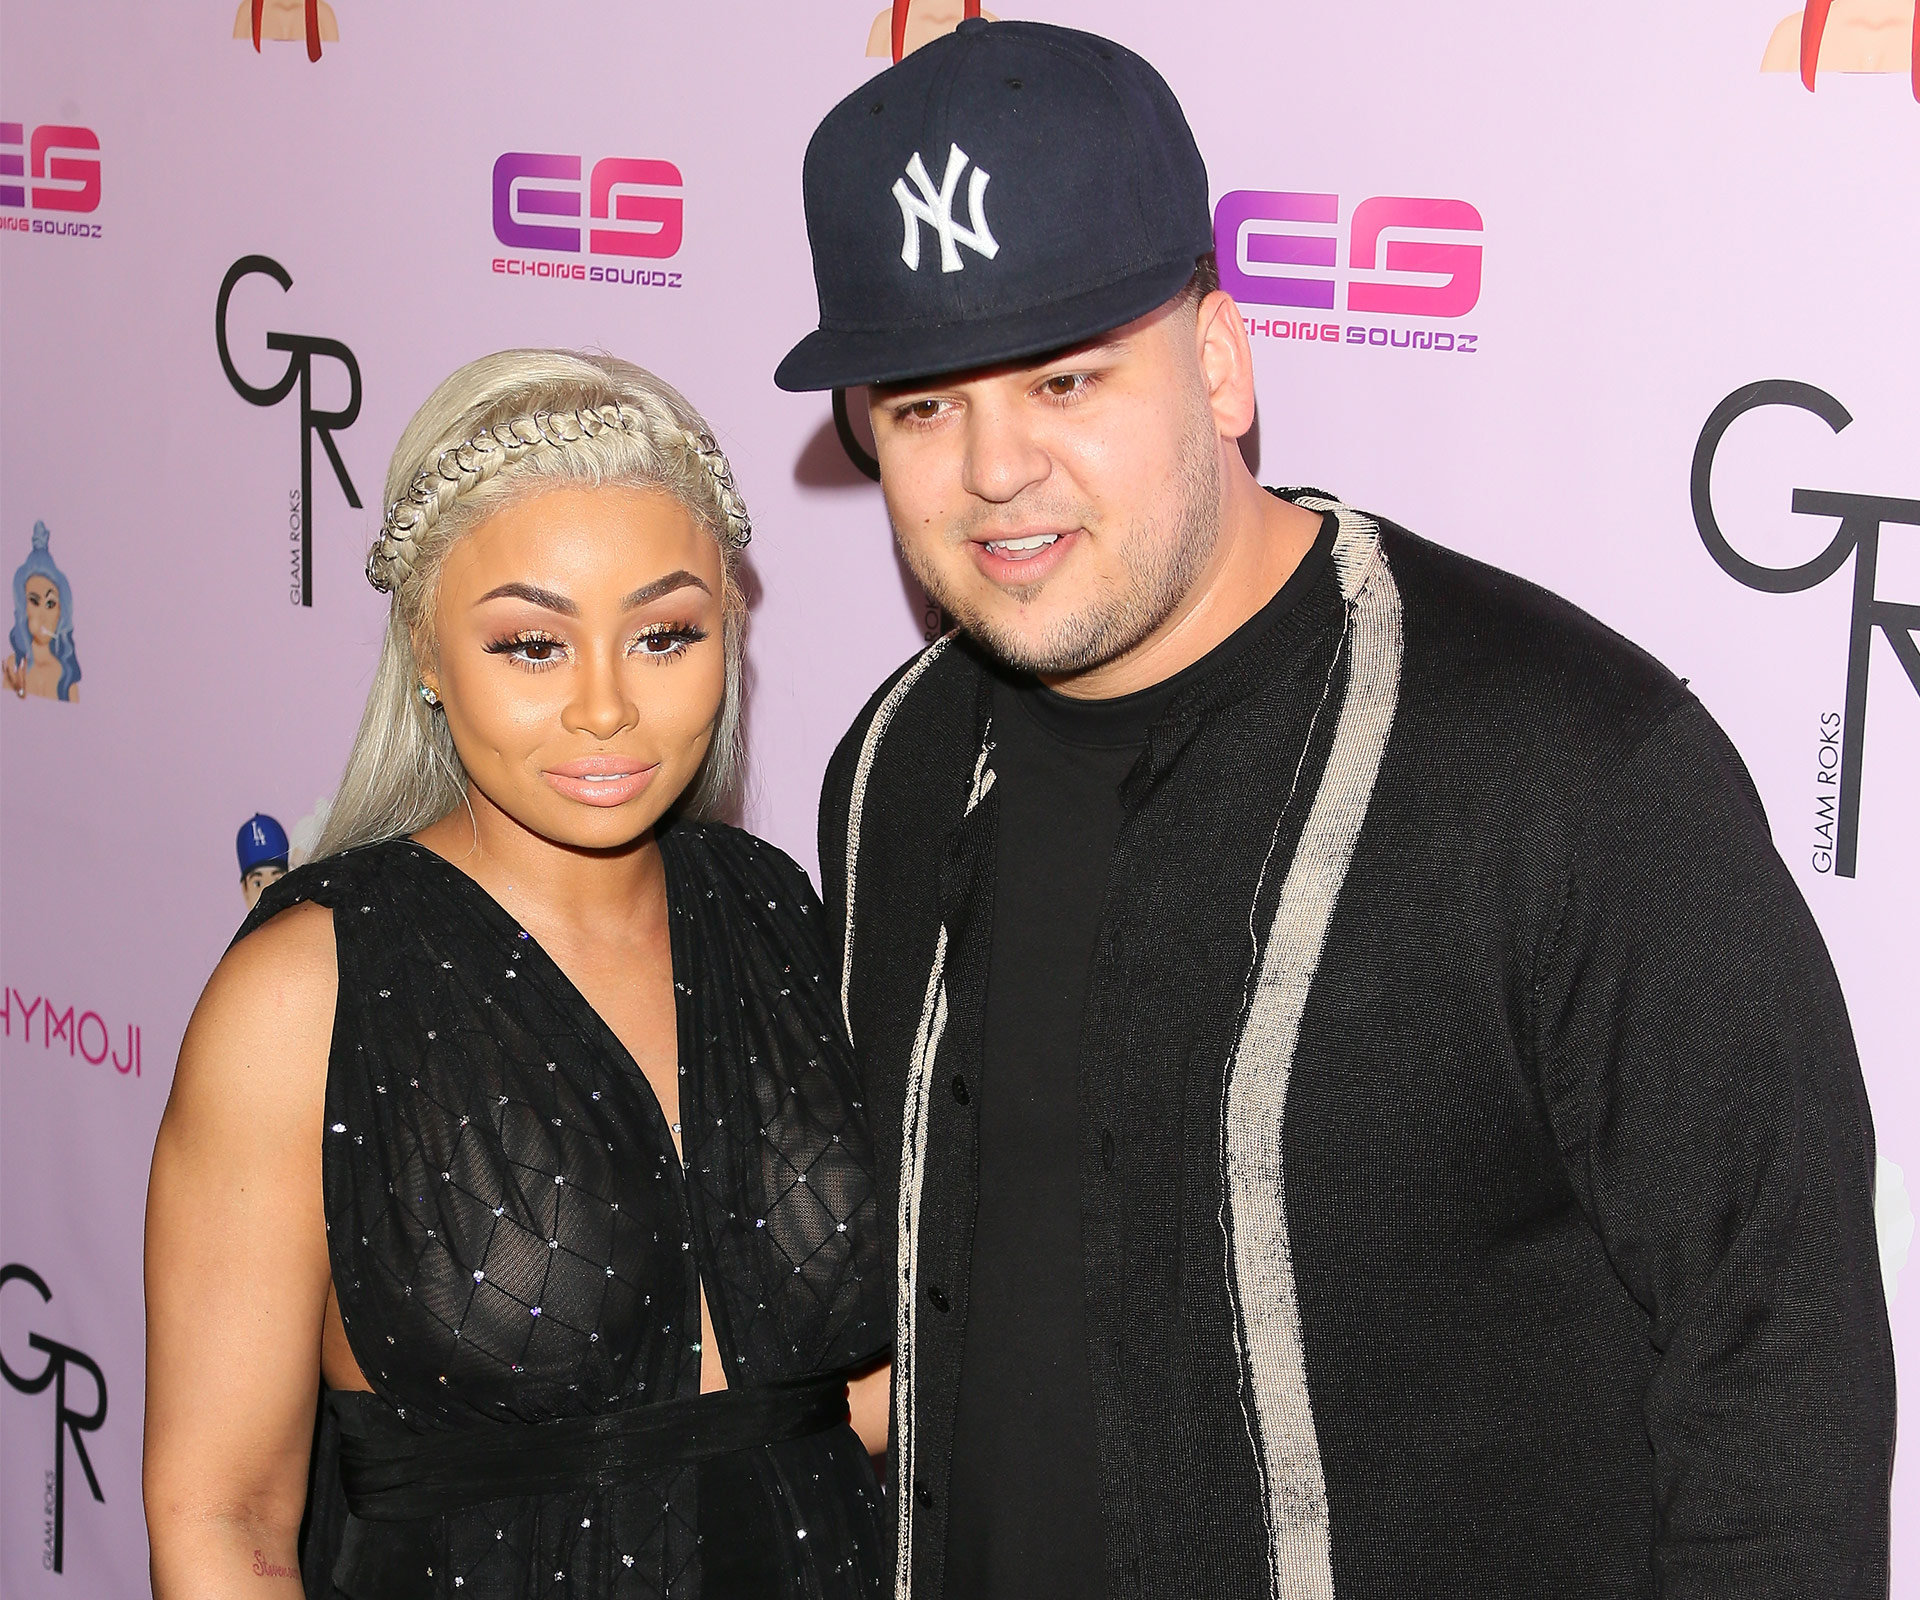 Blac Chyna is 'Single' and 'Happy' since split from Rob Kardashian